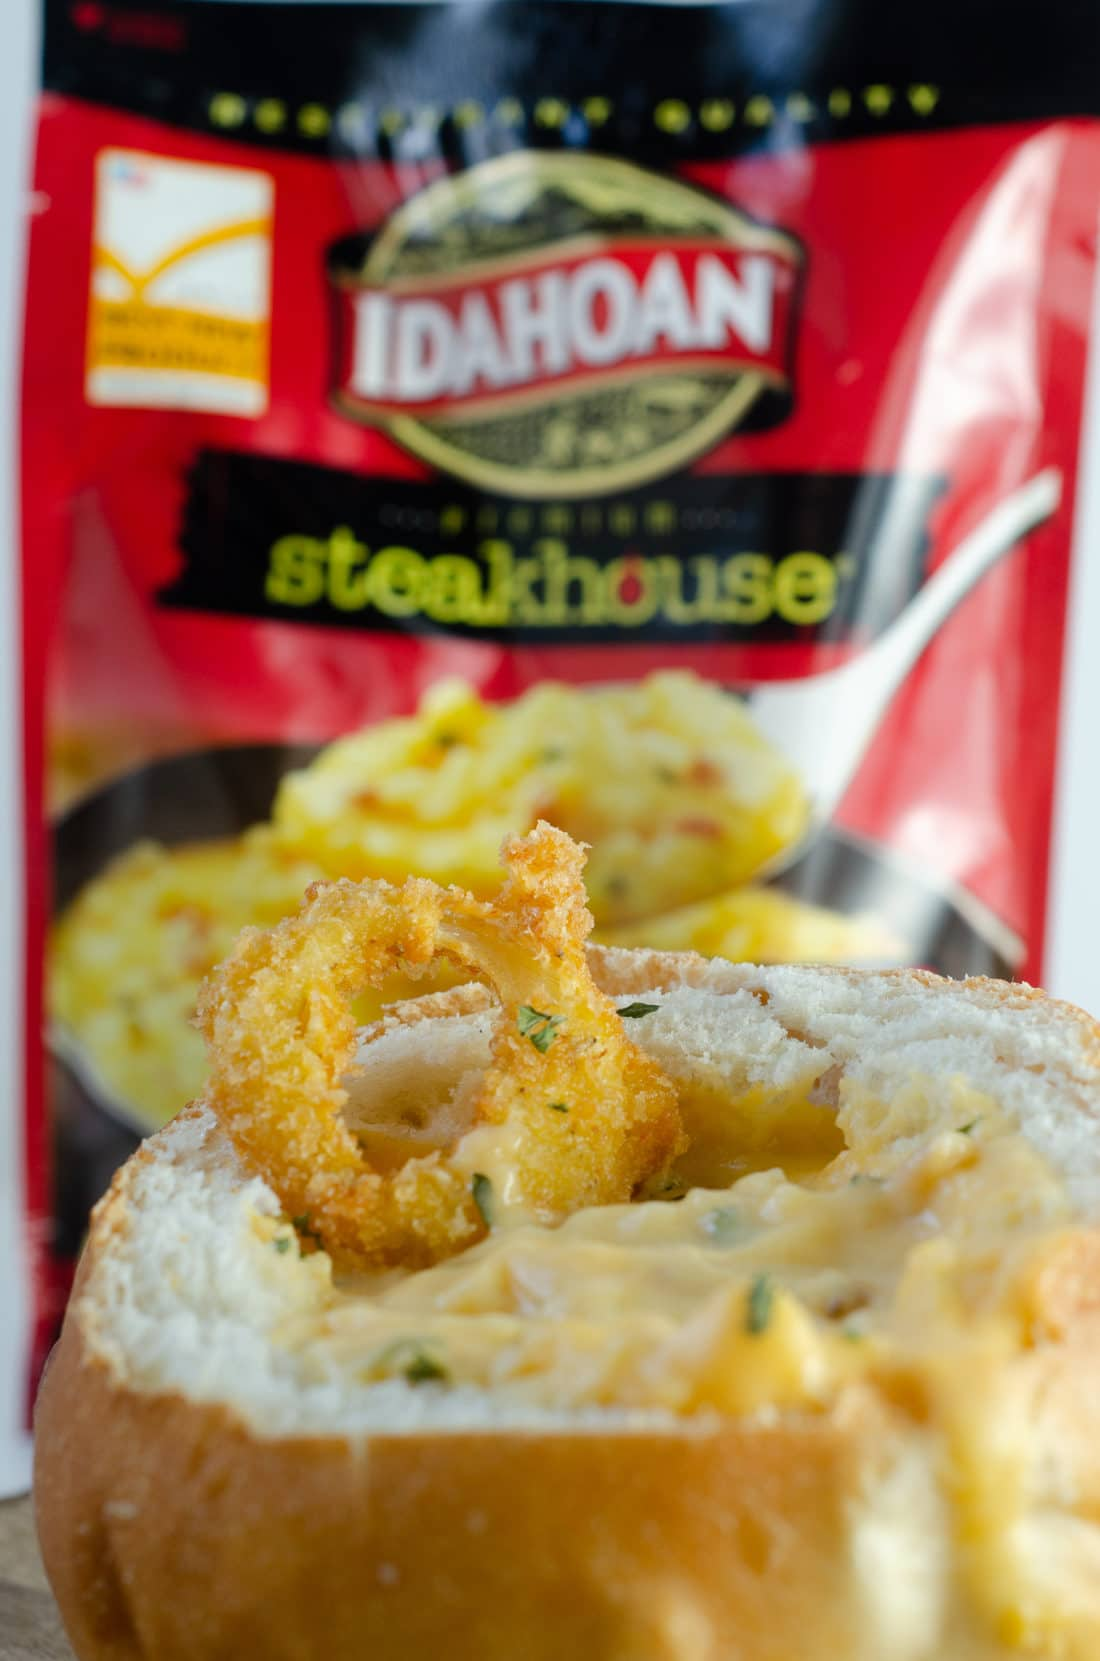 Idahoan Steakhouse Soup in bowl. This crispy restaurant quality Easy Fried Onions will make your taste buds sing. Perfect for helping create Easy Winter Meals With The Family.